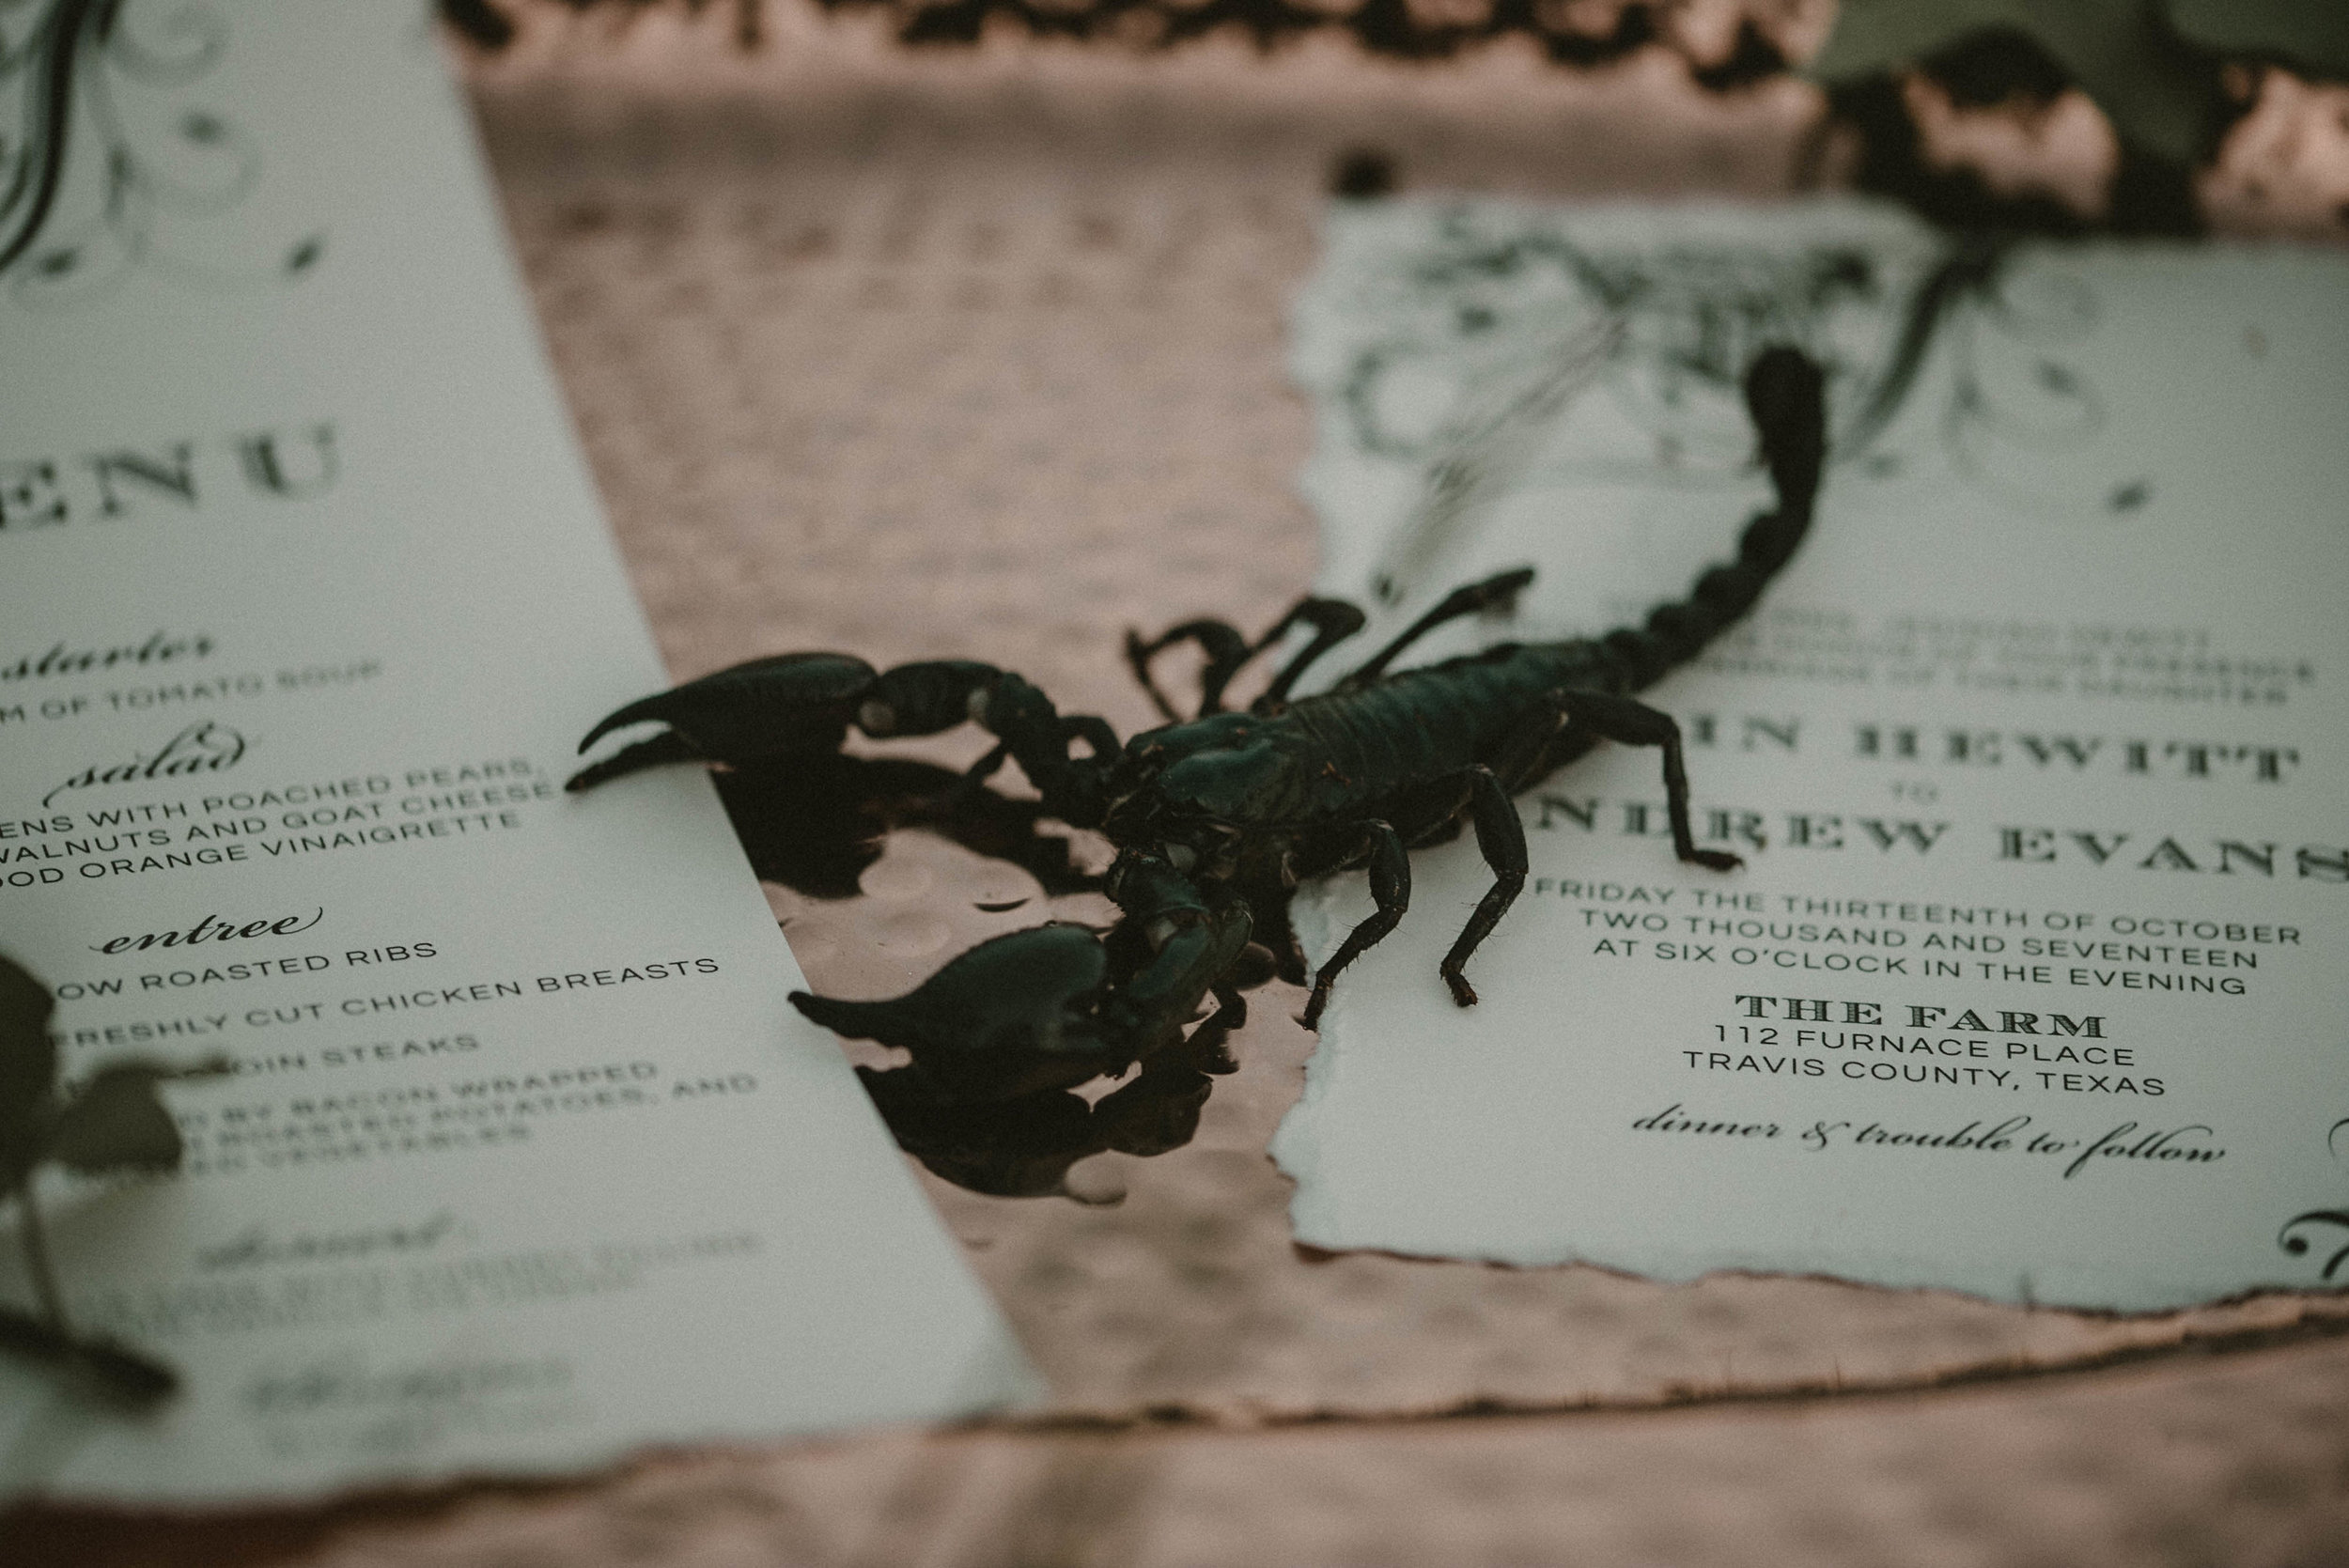 Scorpion on wedding menu